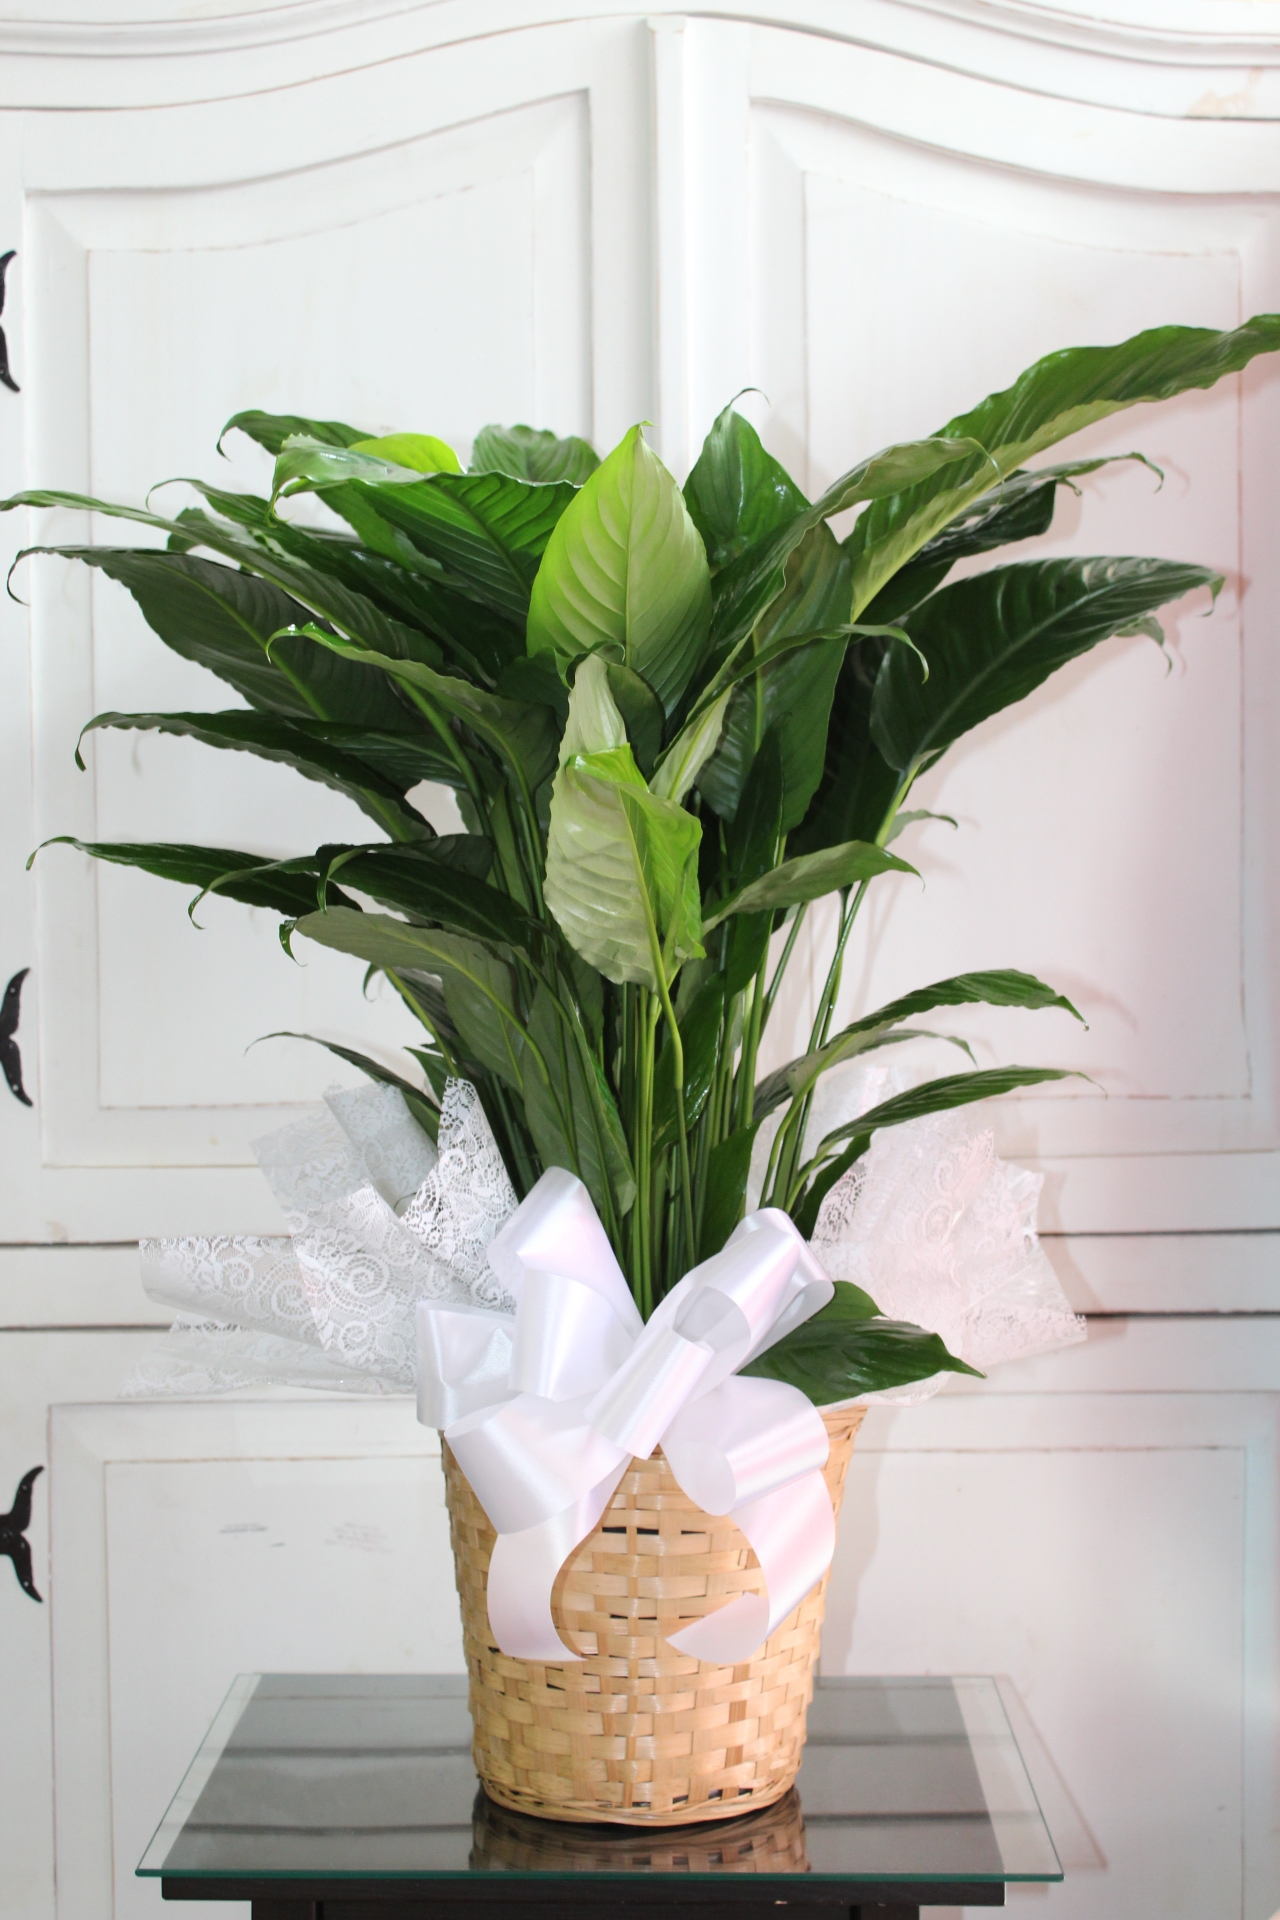 GP-902. Spathiphyllum Plant in wicker basket